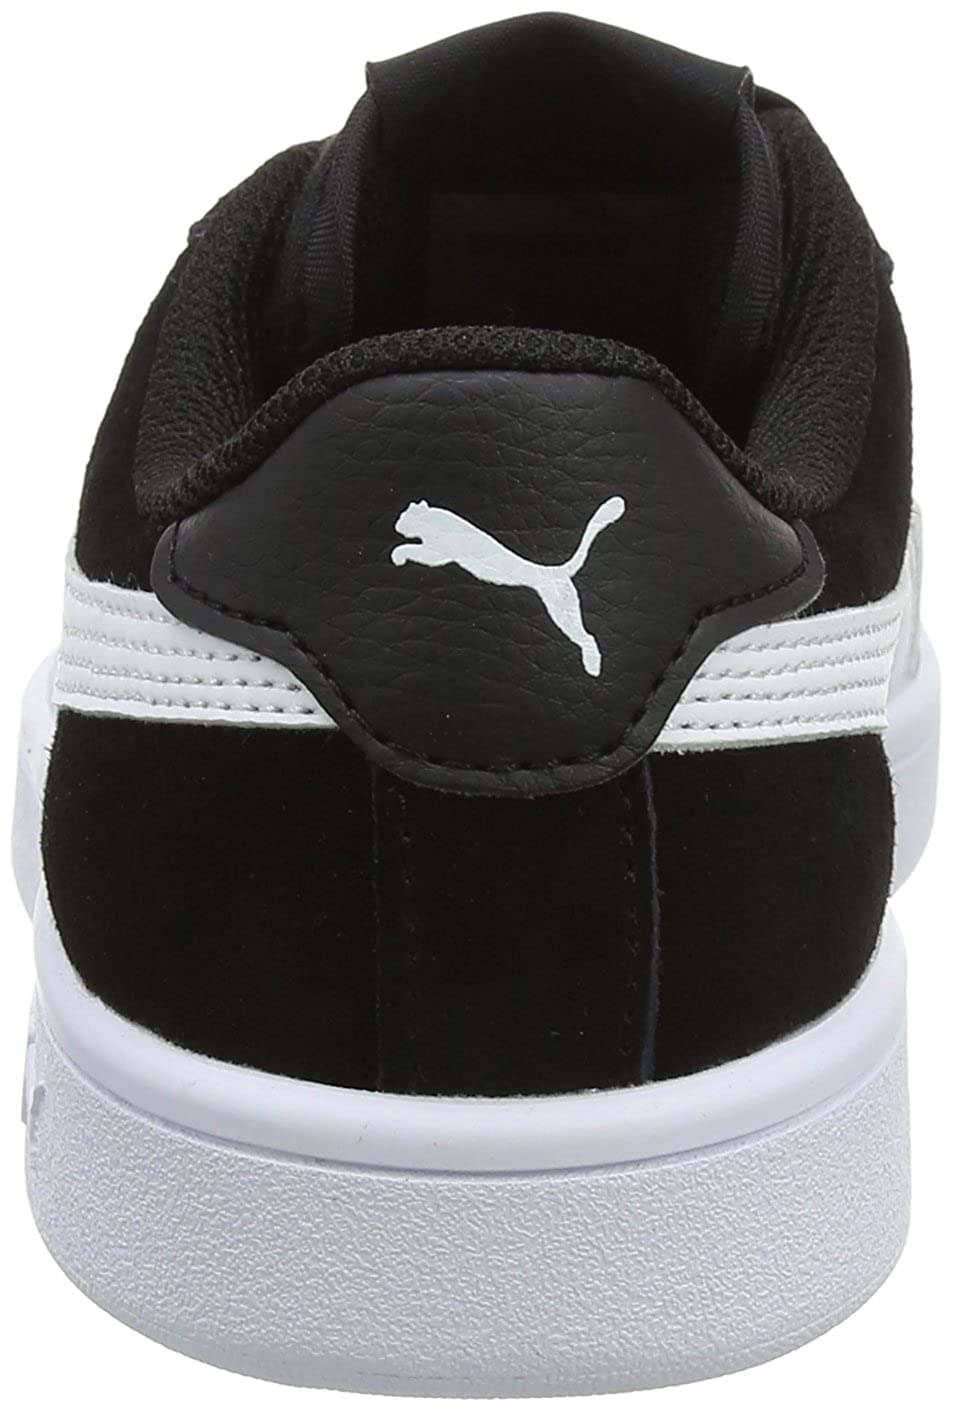 Amazon.com | PUMA Smash V2 Ribbon Jr 366003-01 Kids Shoes Black | Sneakers